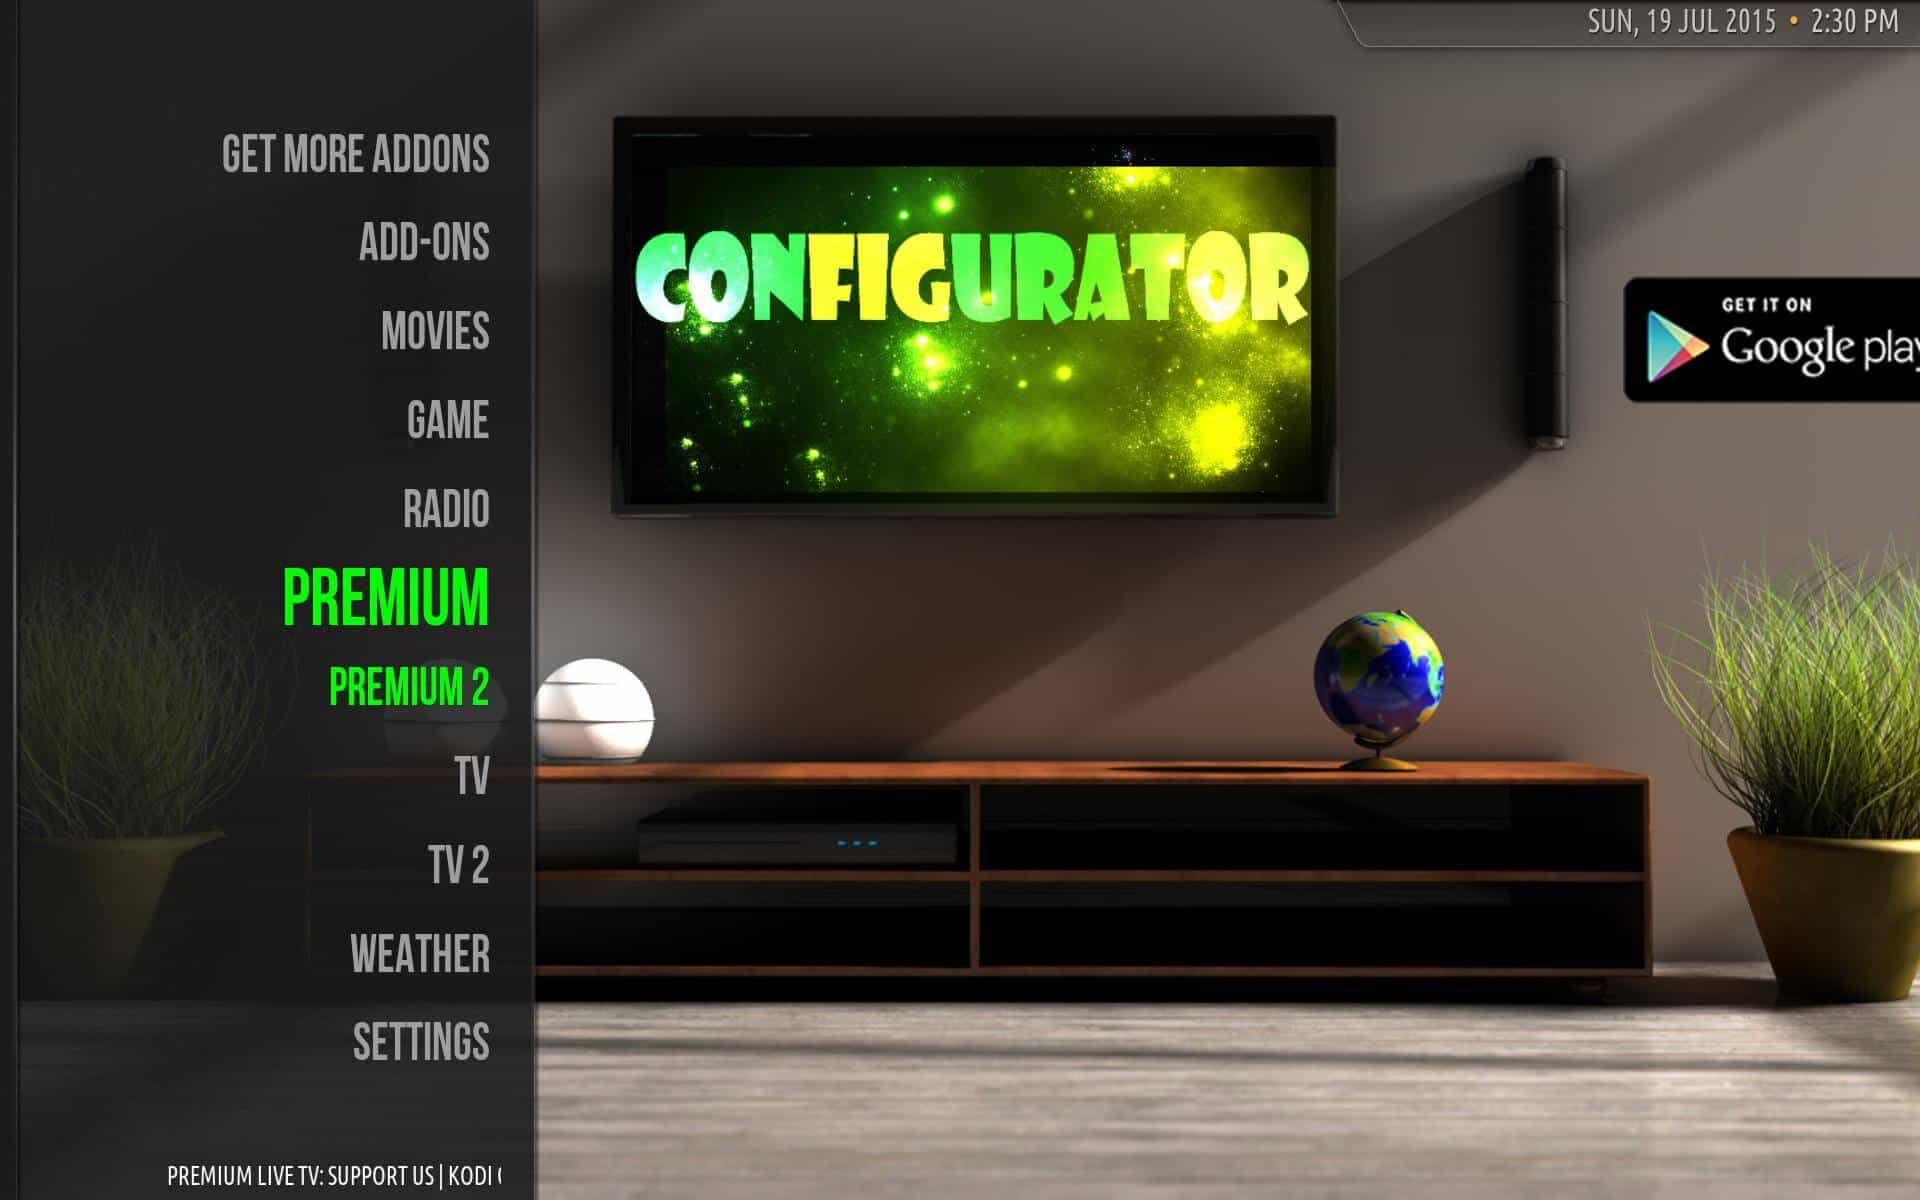 Guide How To Install Kodi Configurator On Android